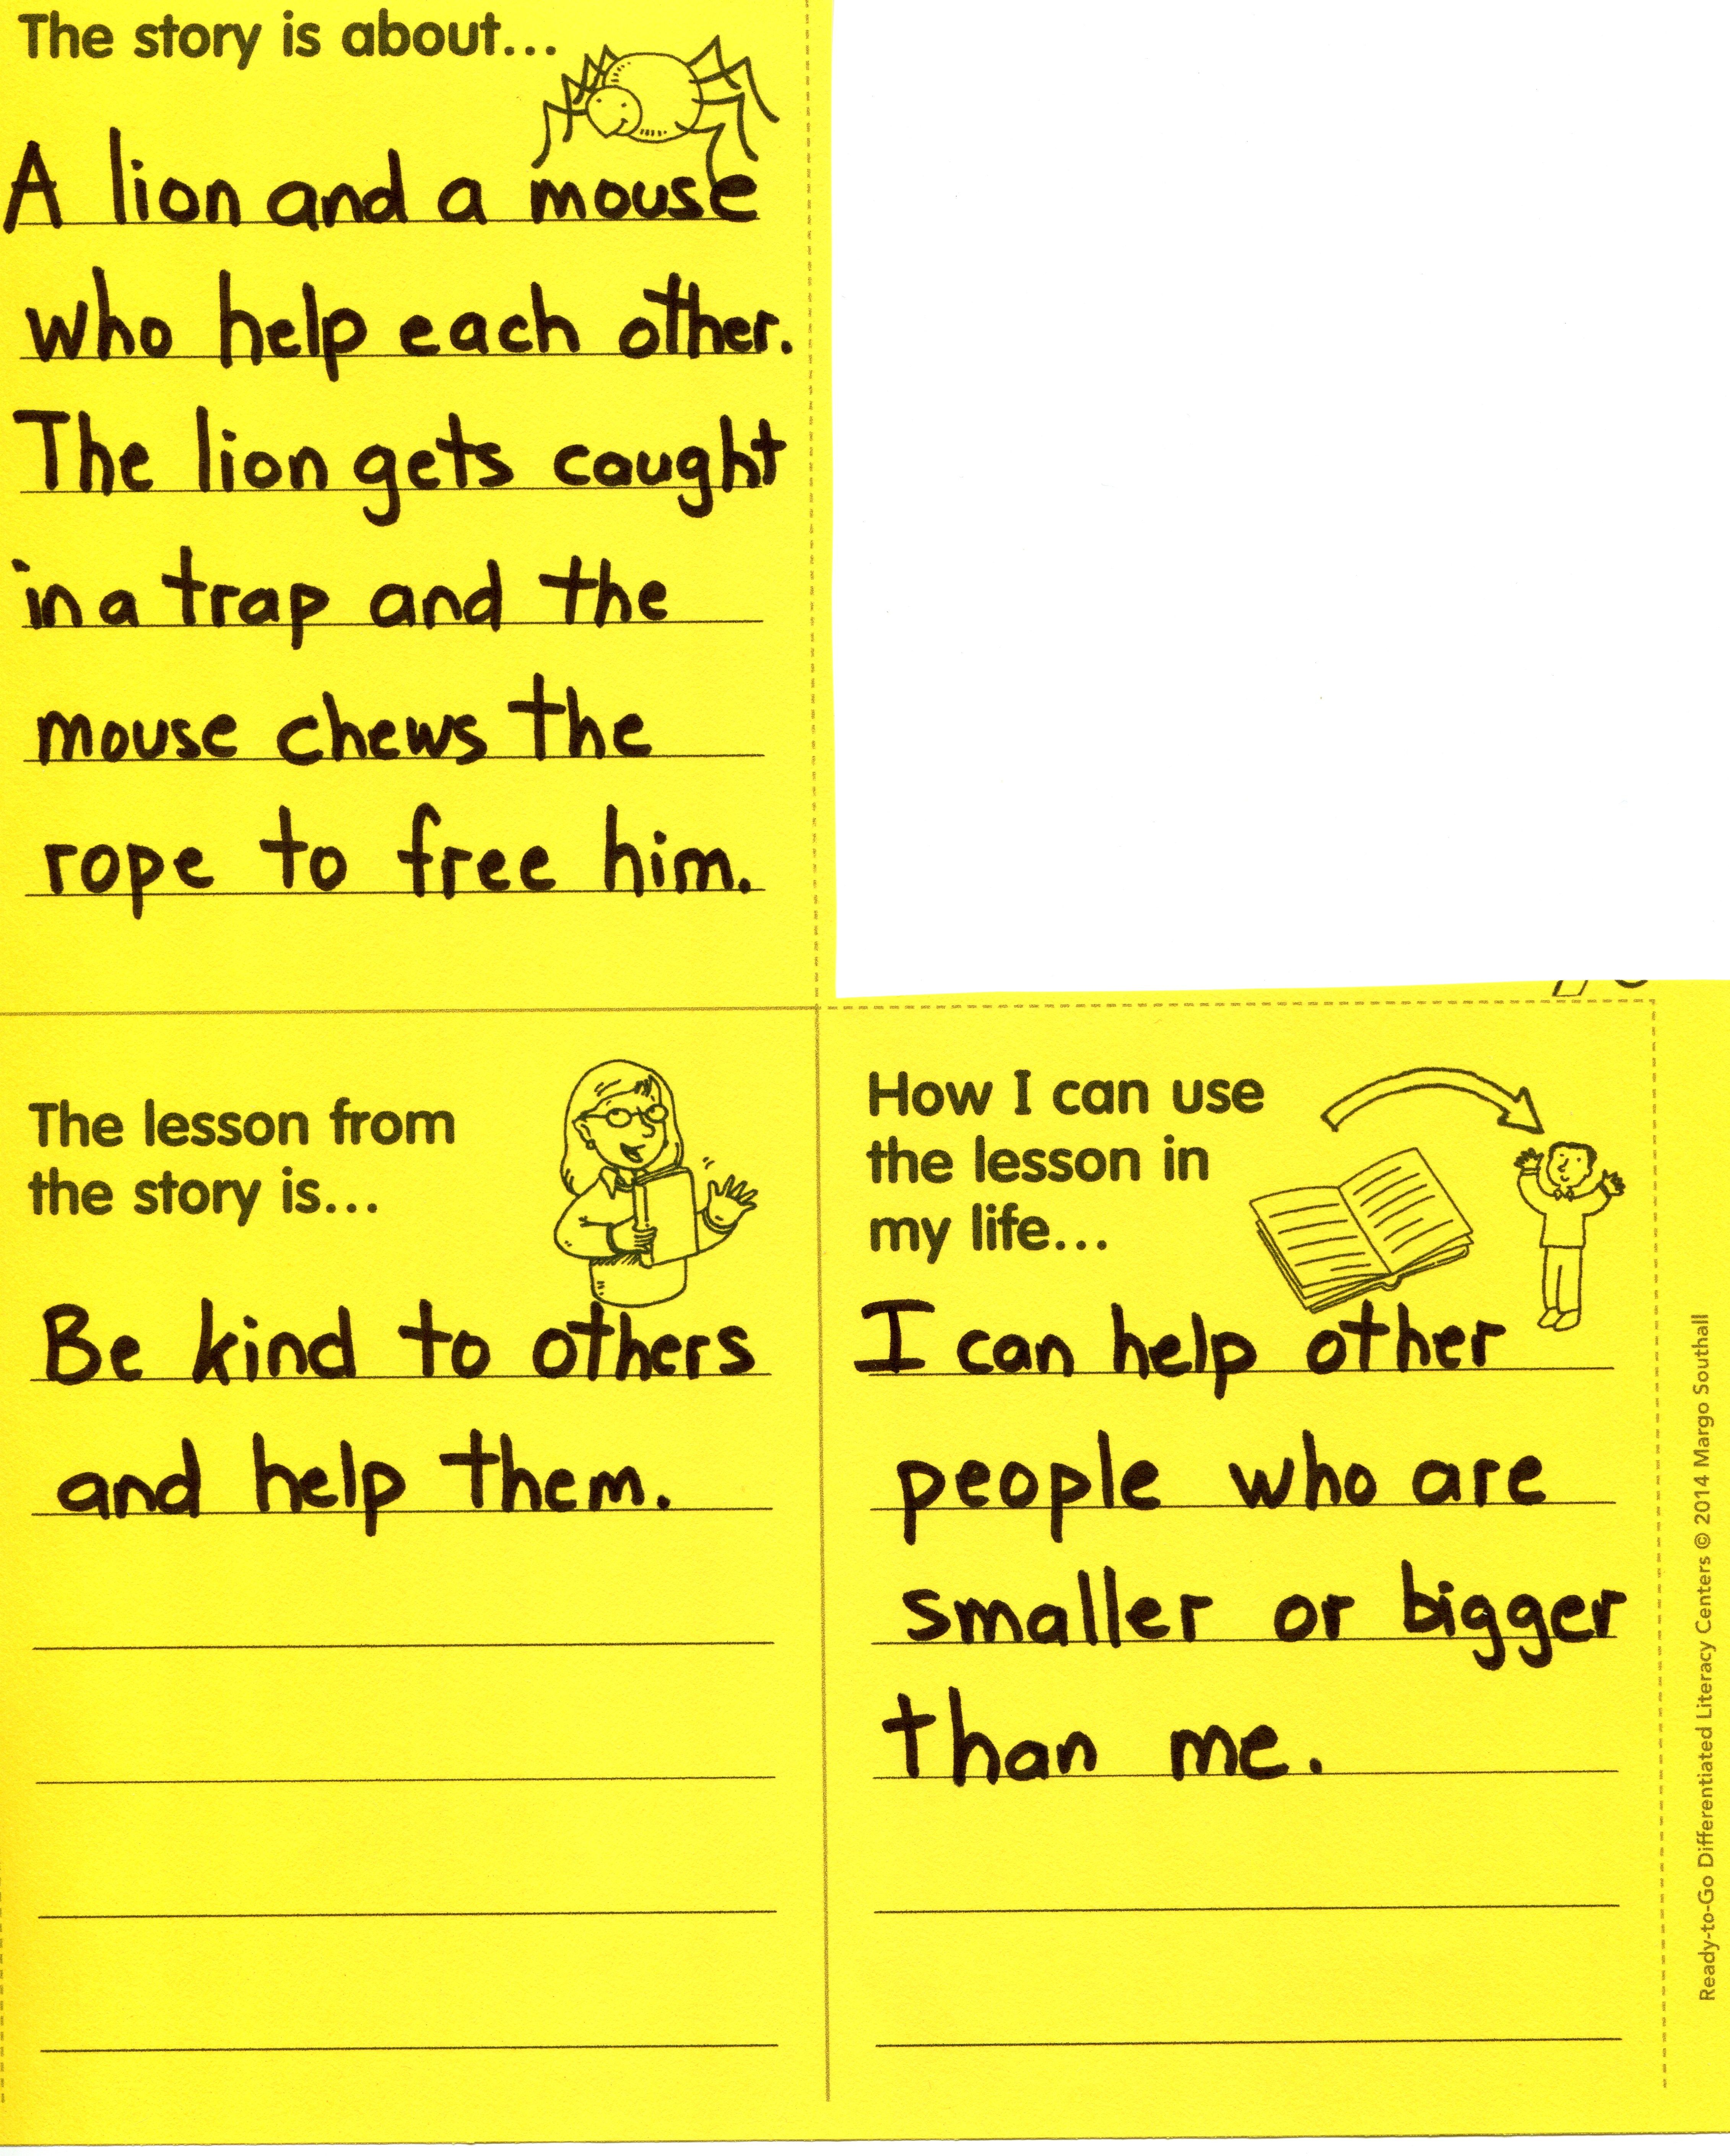 In This Comprehension Center Task Students Summarize The